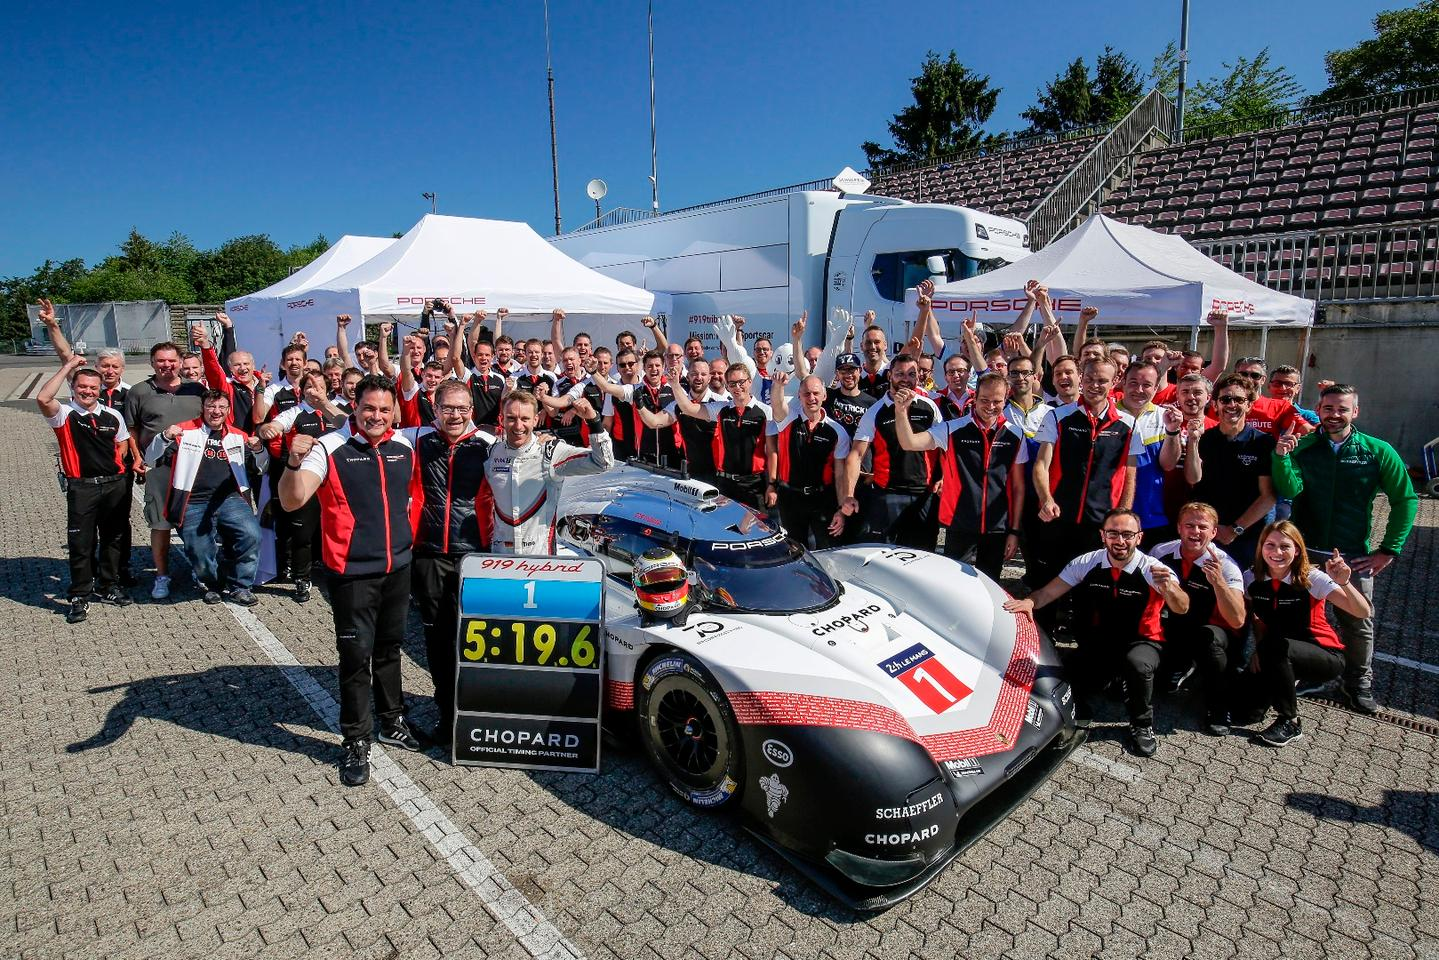 Timo Bernhard and the Porsche 919 Hybrid Evo destroy the all-time 'Ring record